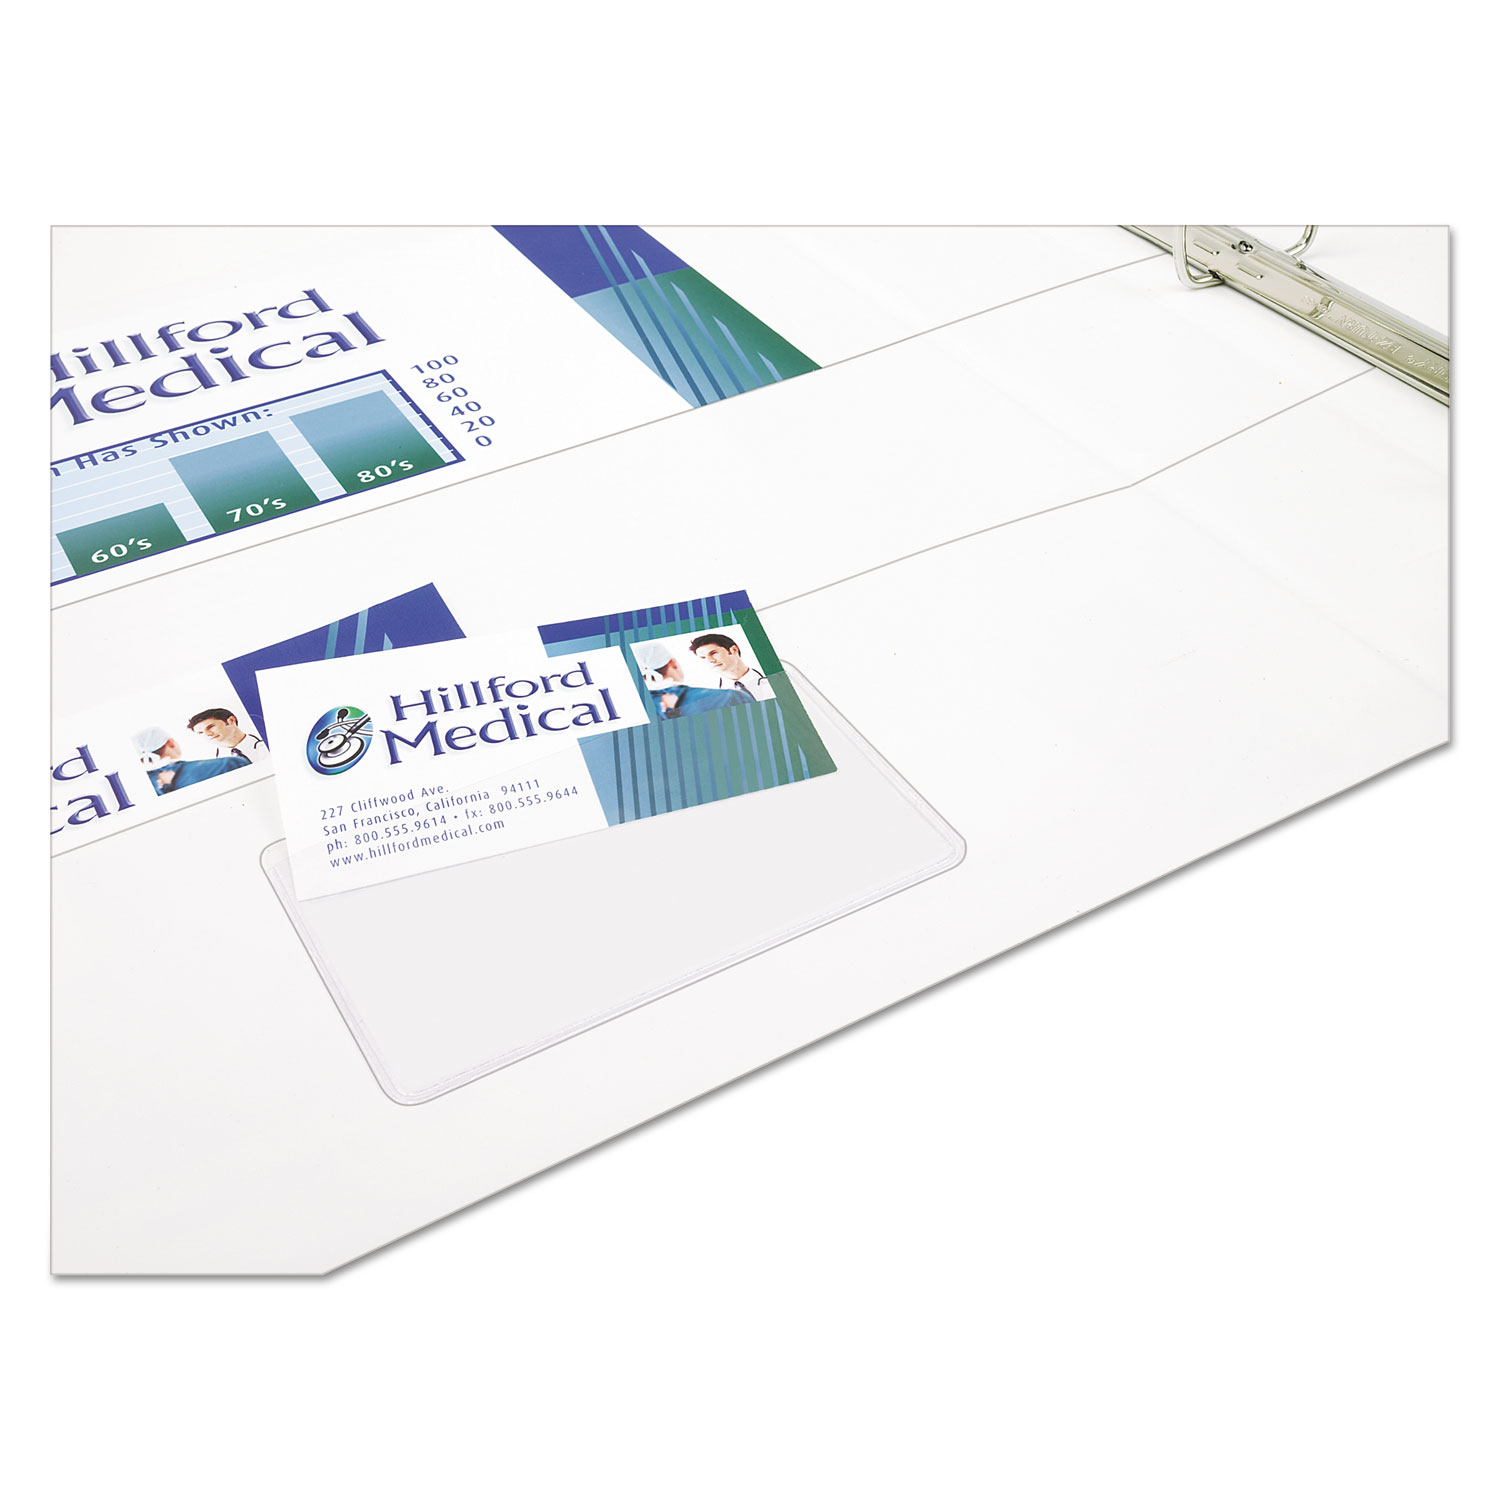 Self adhesive business card holders by avery ave73720 self adhesive business card holders top load 3 12 x 2 clear 10pack colourmoves